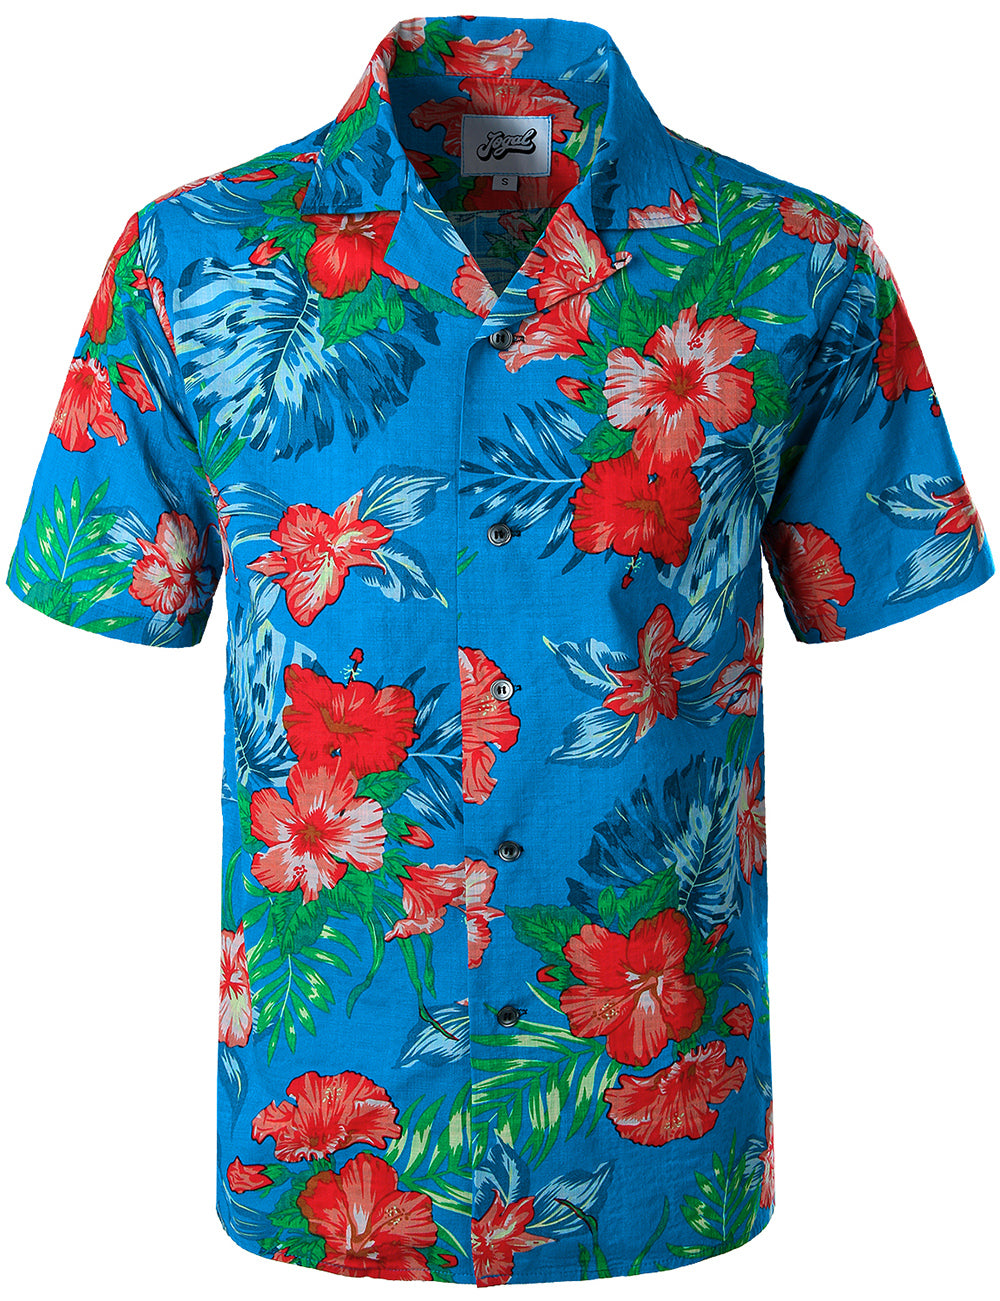 JOGAL Hawaiian Shirts for Men Short Sleeve Regular Fit Tropical Floral Button Down Shirts